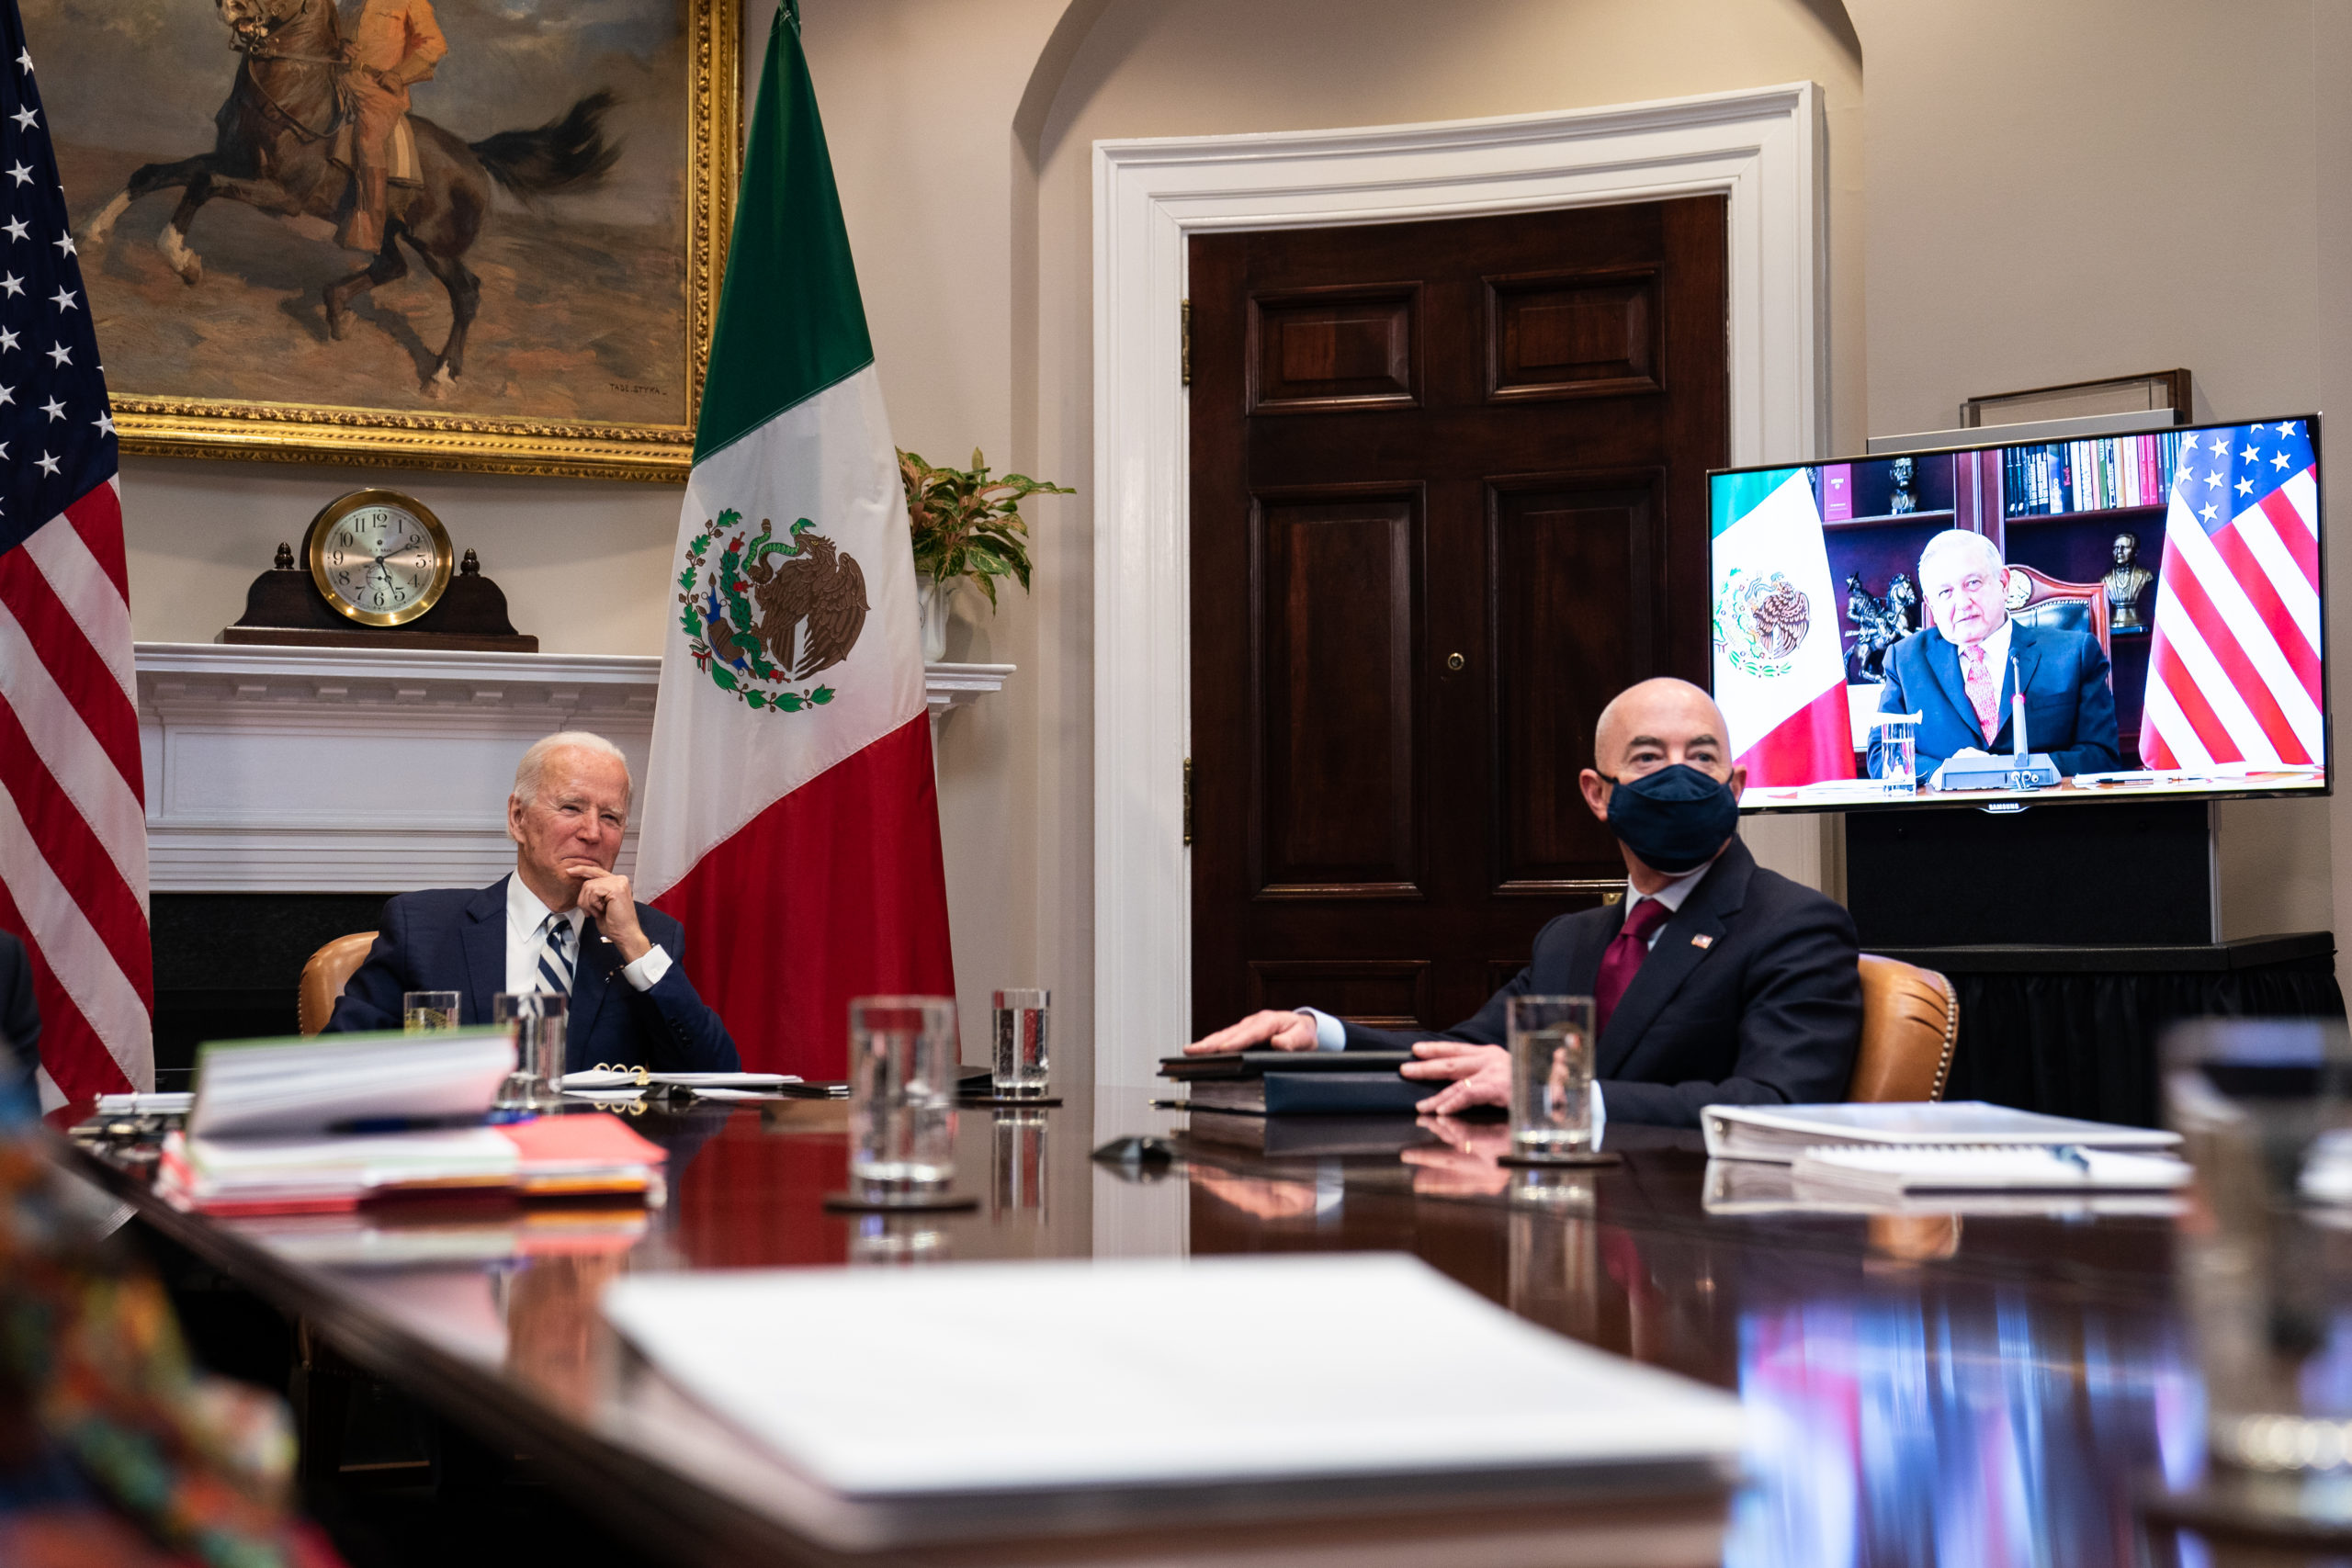 WASHINGTON, DC - MARCH 01: U.S. President Joe Biden (L) and Secretary of Homeland Security Alejandro Mayorkas (C) attend a virtual meeting with Mexican President Andrés Manuel López Obrador (on monitor) in the Roosevelt Room of the White House on March 1, 2021 in Washington, DC. (Photo by Anna Moneymaker-Pool/Getty Images)